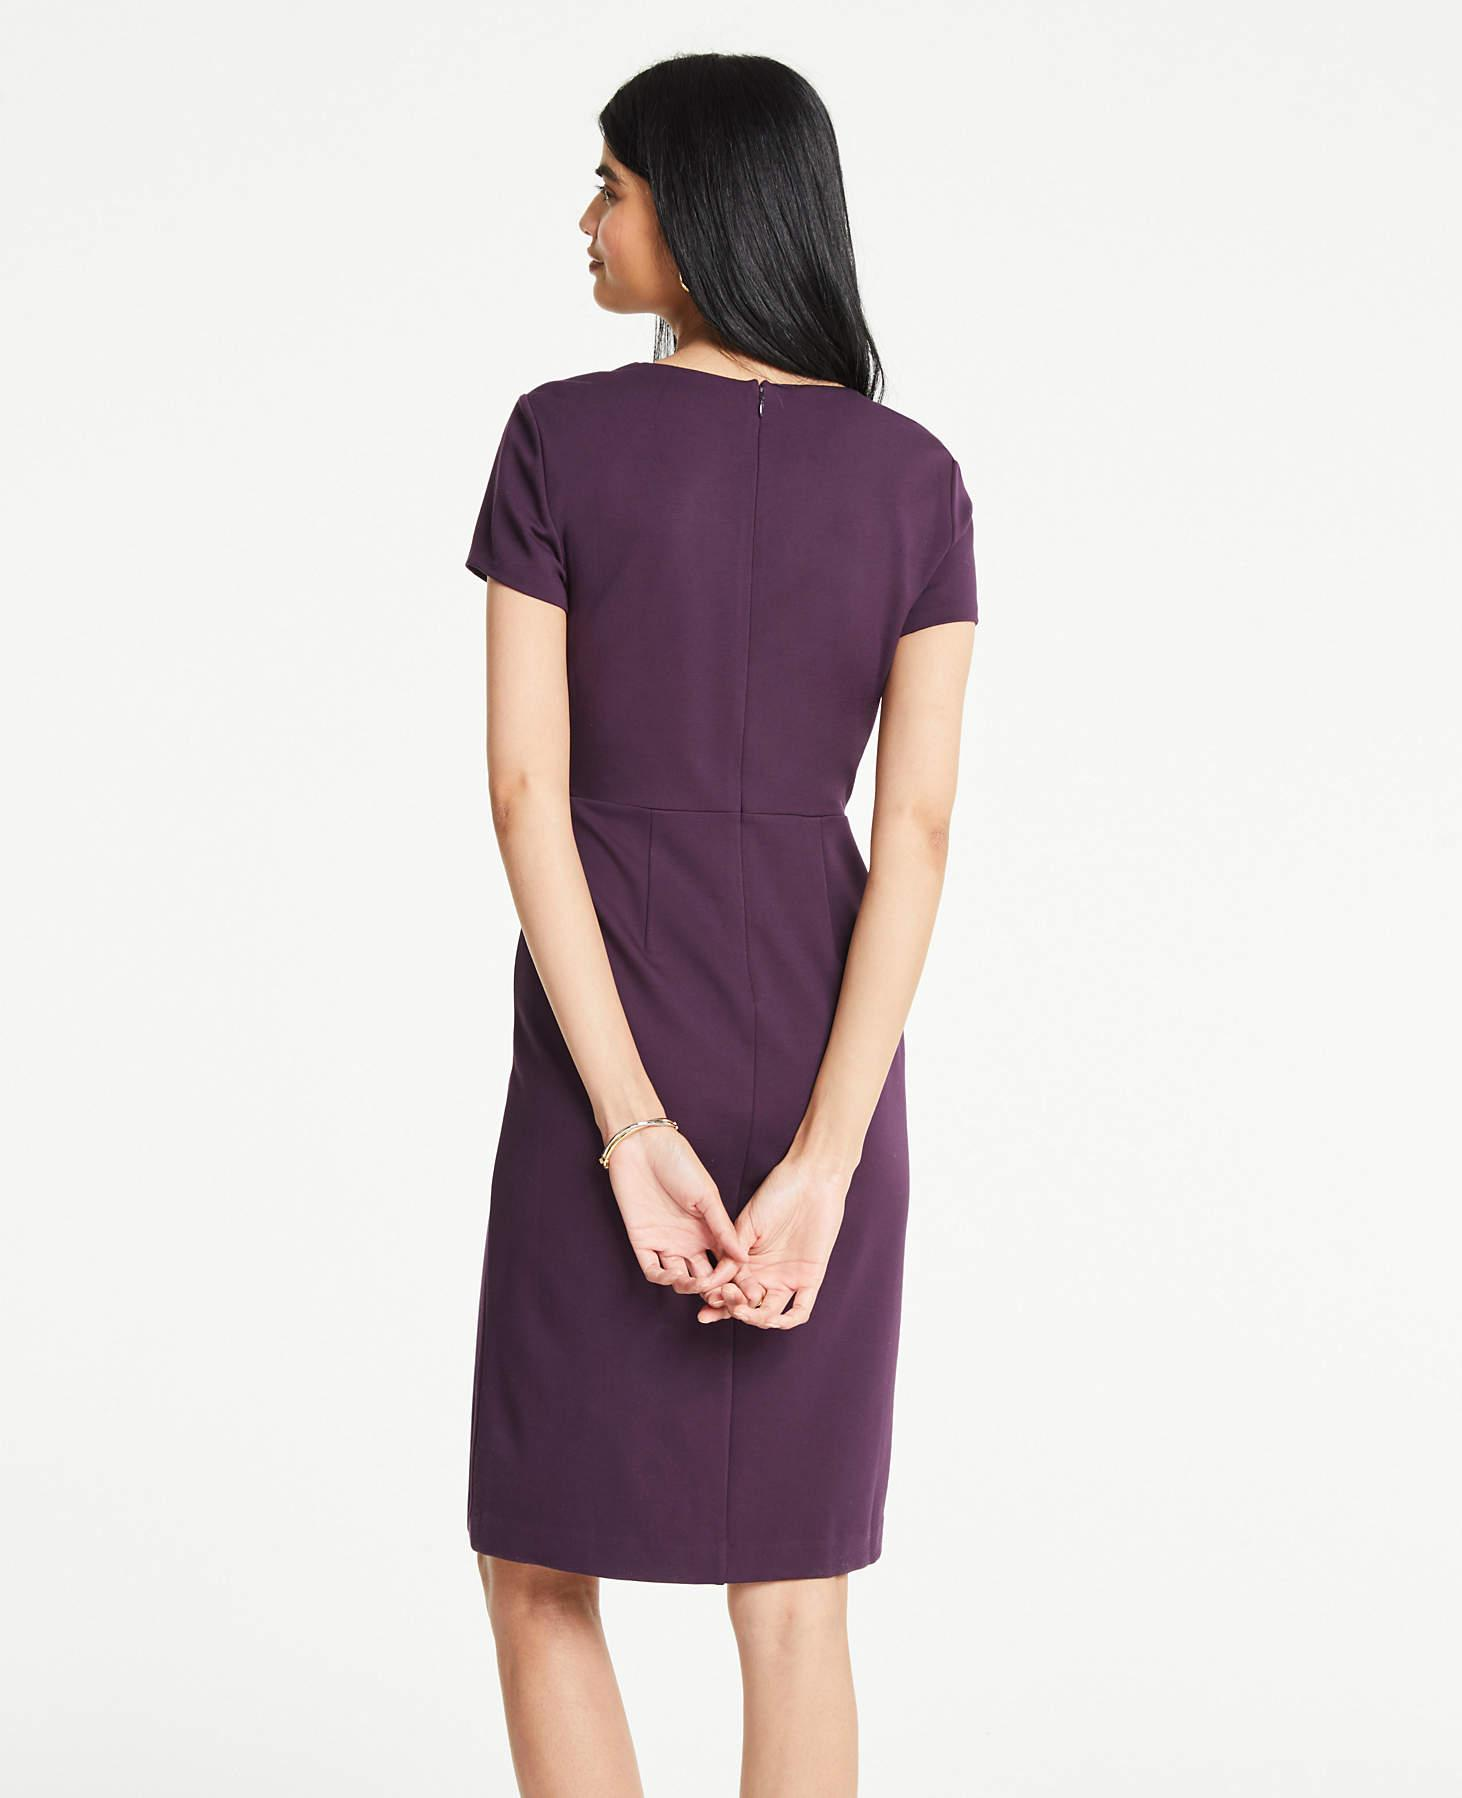 61d709b45644 Lyst - Ann Taylor The Petite All-day Ponte Dress In Colorblock in Purple